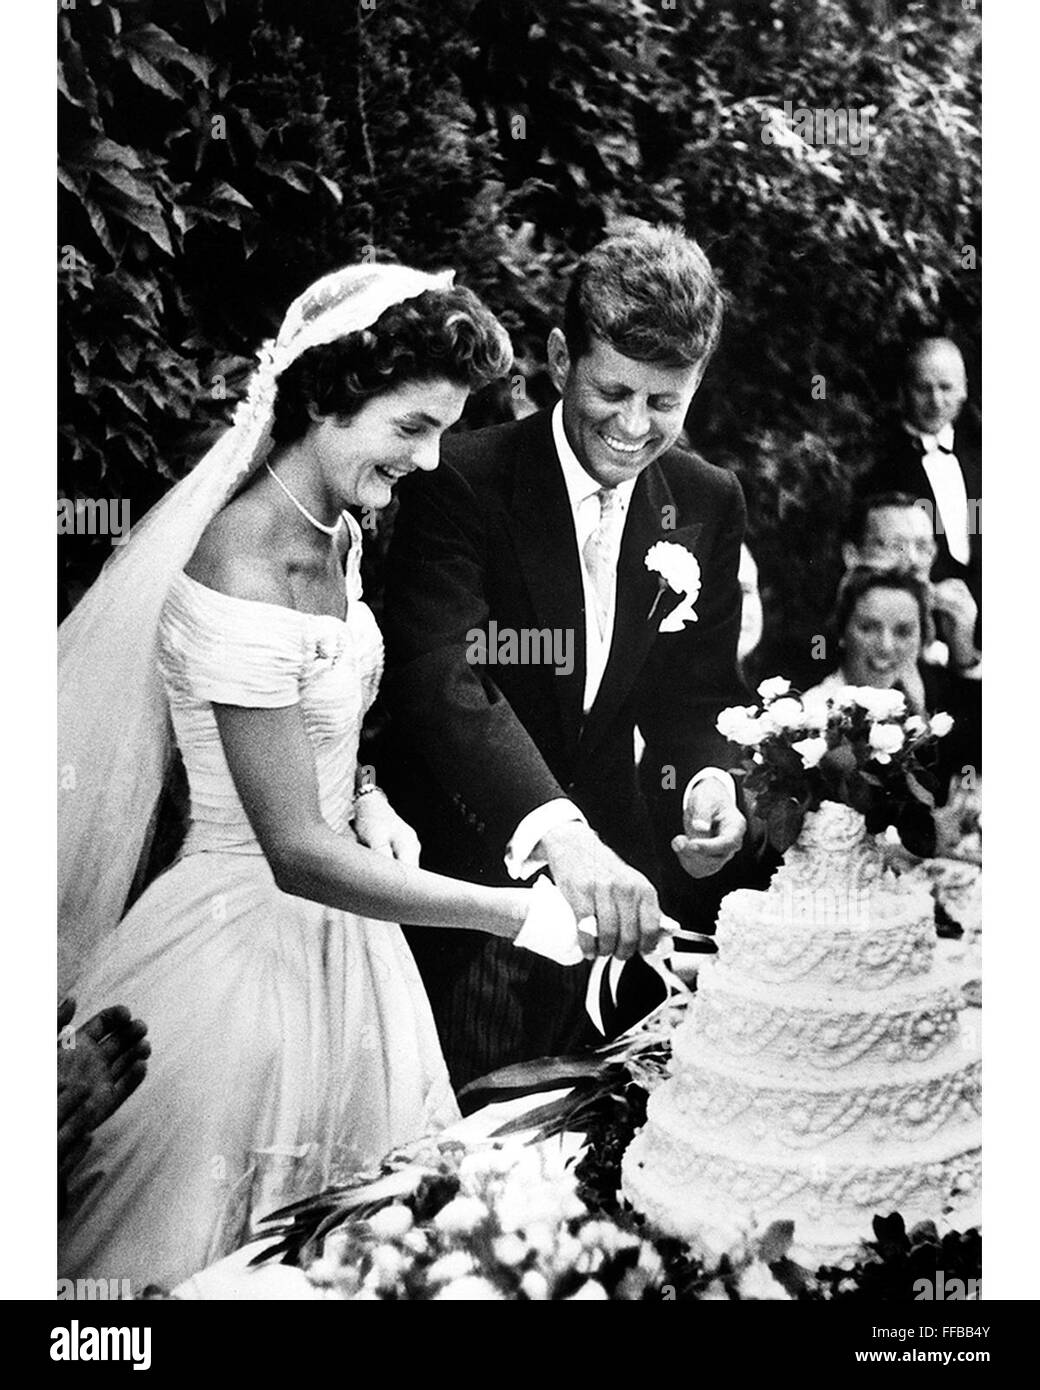 Wedding of john f kennedy and jacqueline bouvier at hammersmith wedding of john f kennedy and jacqueline bouvier at hammersmith farm newport rhode island on september 12 1953 photograph by toni frissell junglespirit Gallery